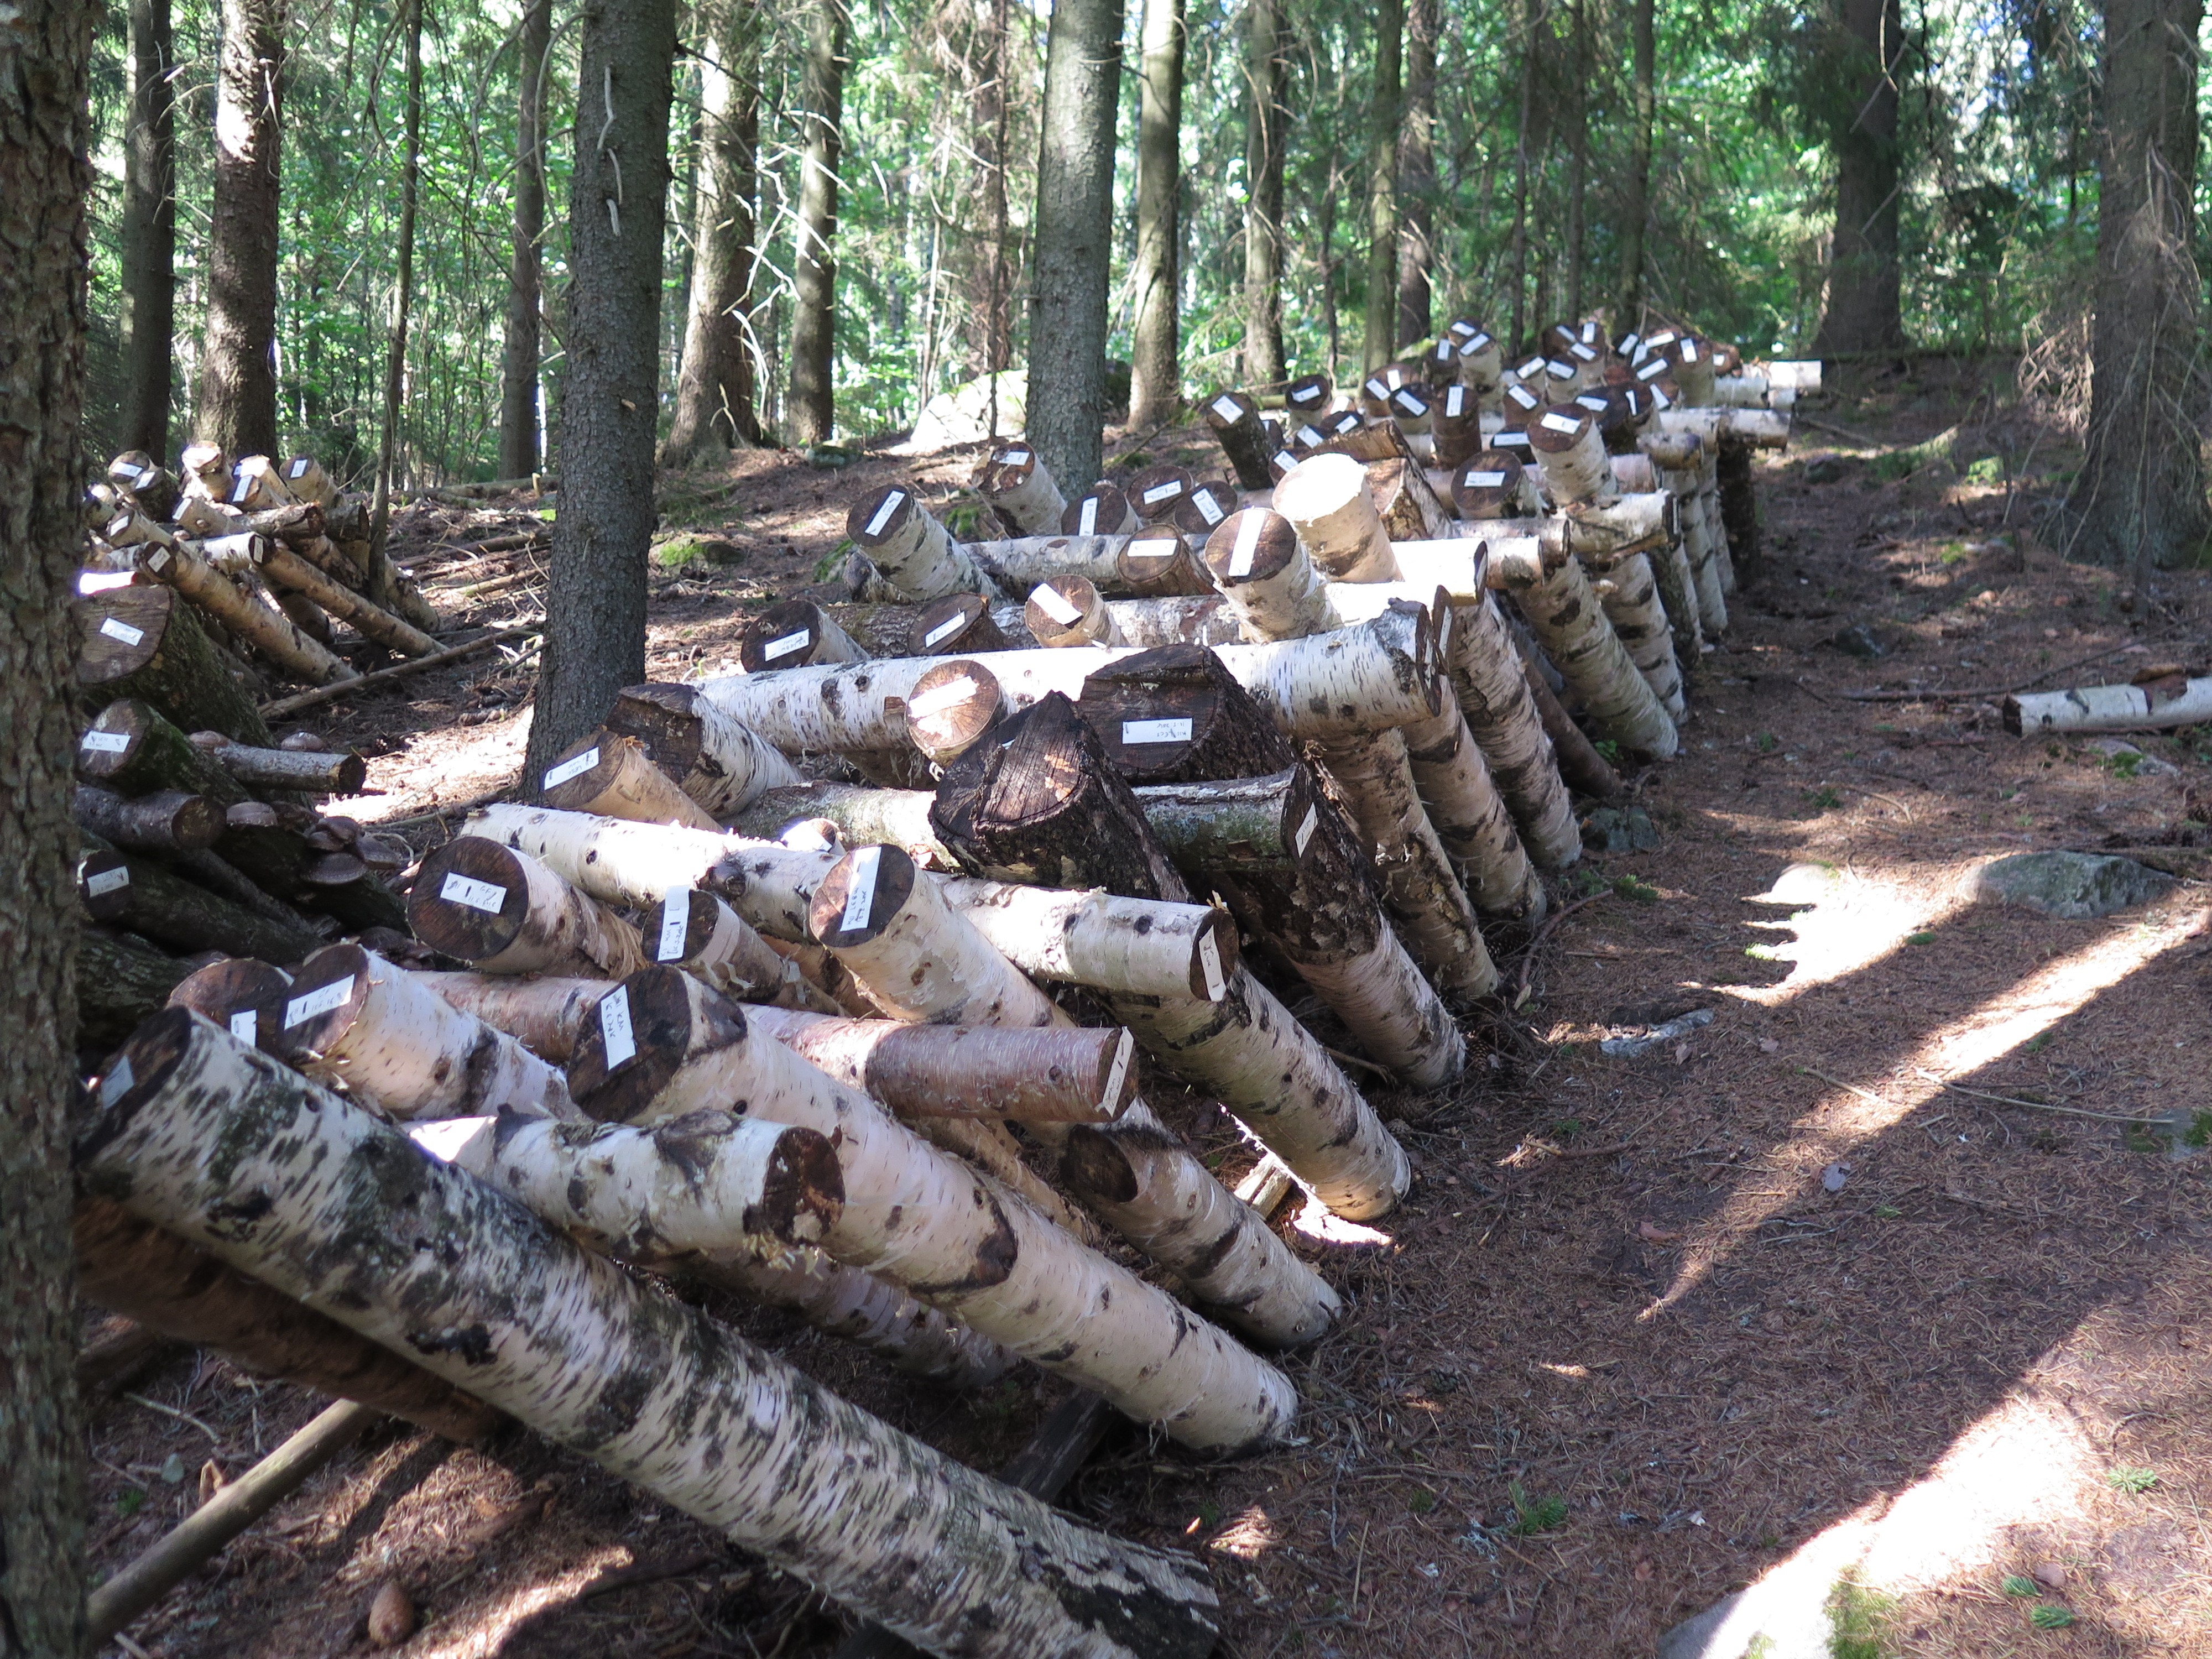 Mushroom cultivation brings additional income to forest